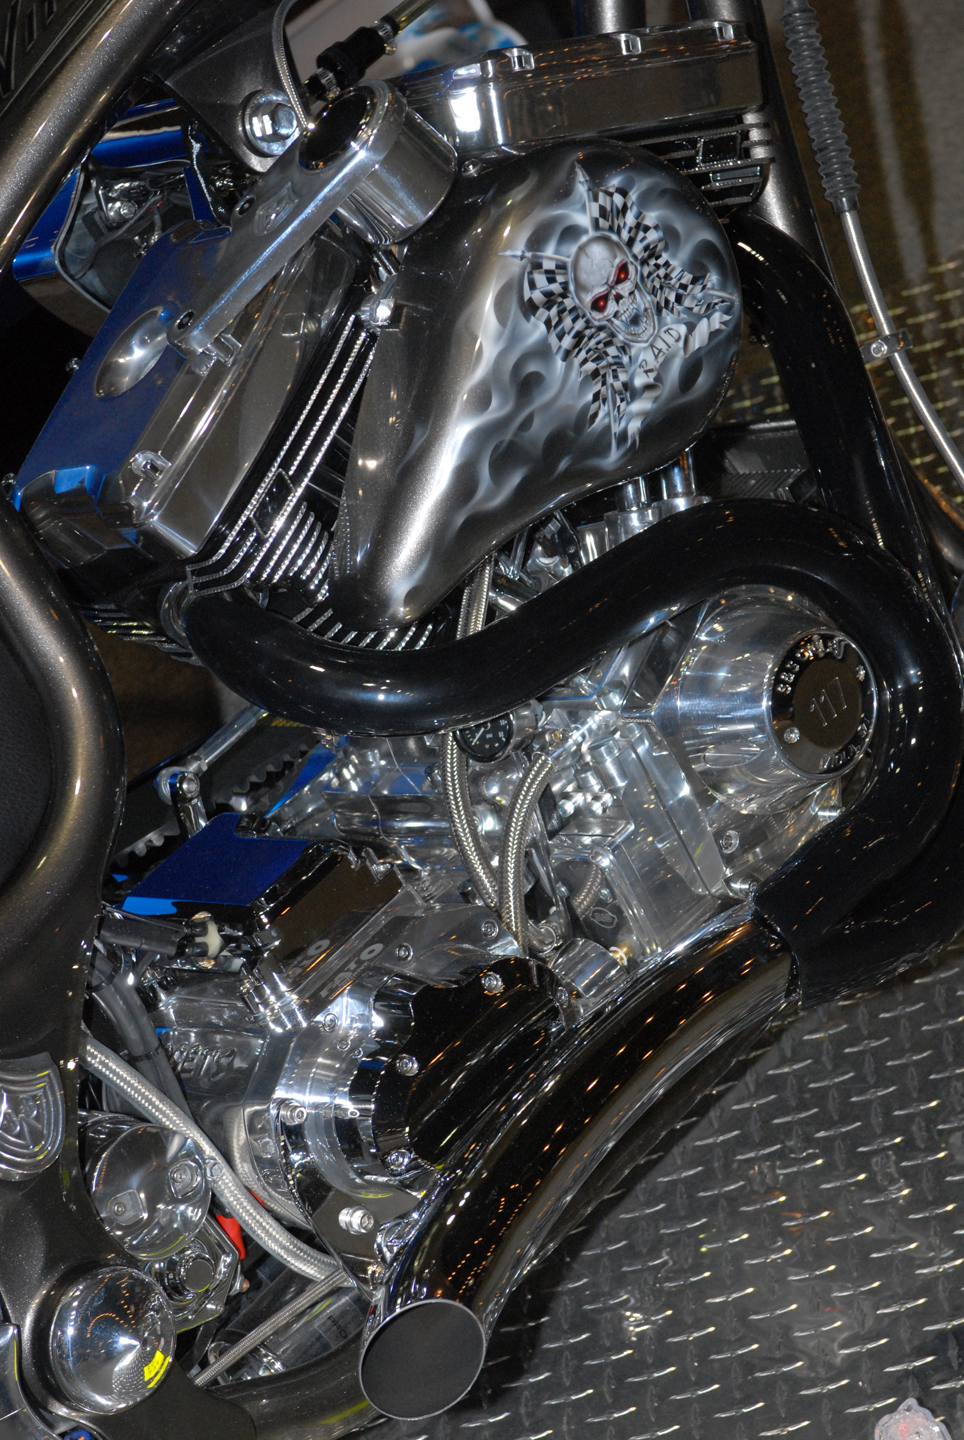 2007 VIPER 2 CUSTOM MOTORCYCLE - Engine - 45101